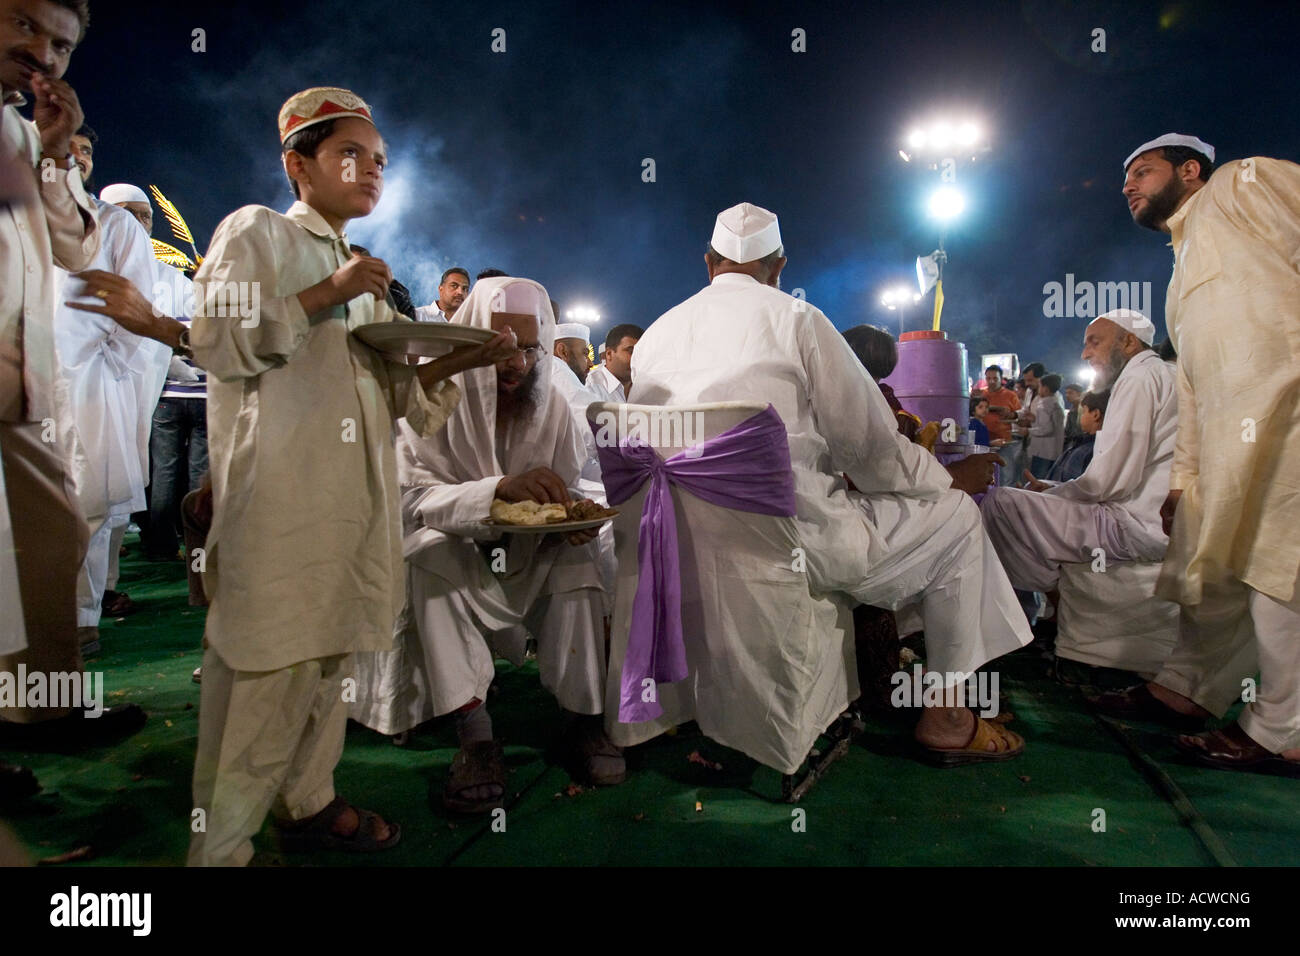 Hochzeit Islam Islam Festivals Muslim Culture Stockfotos And Islam